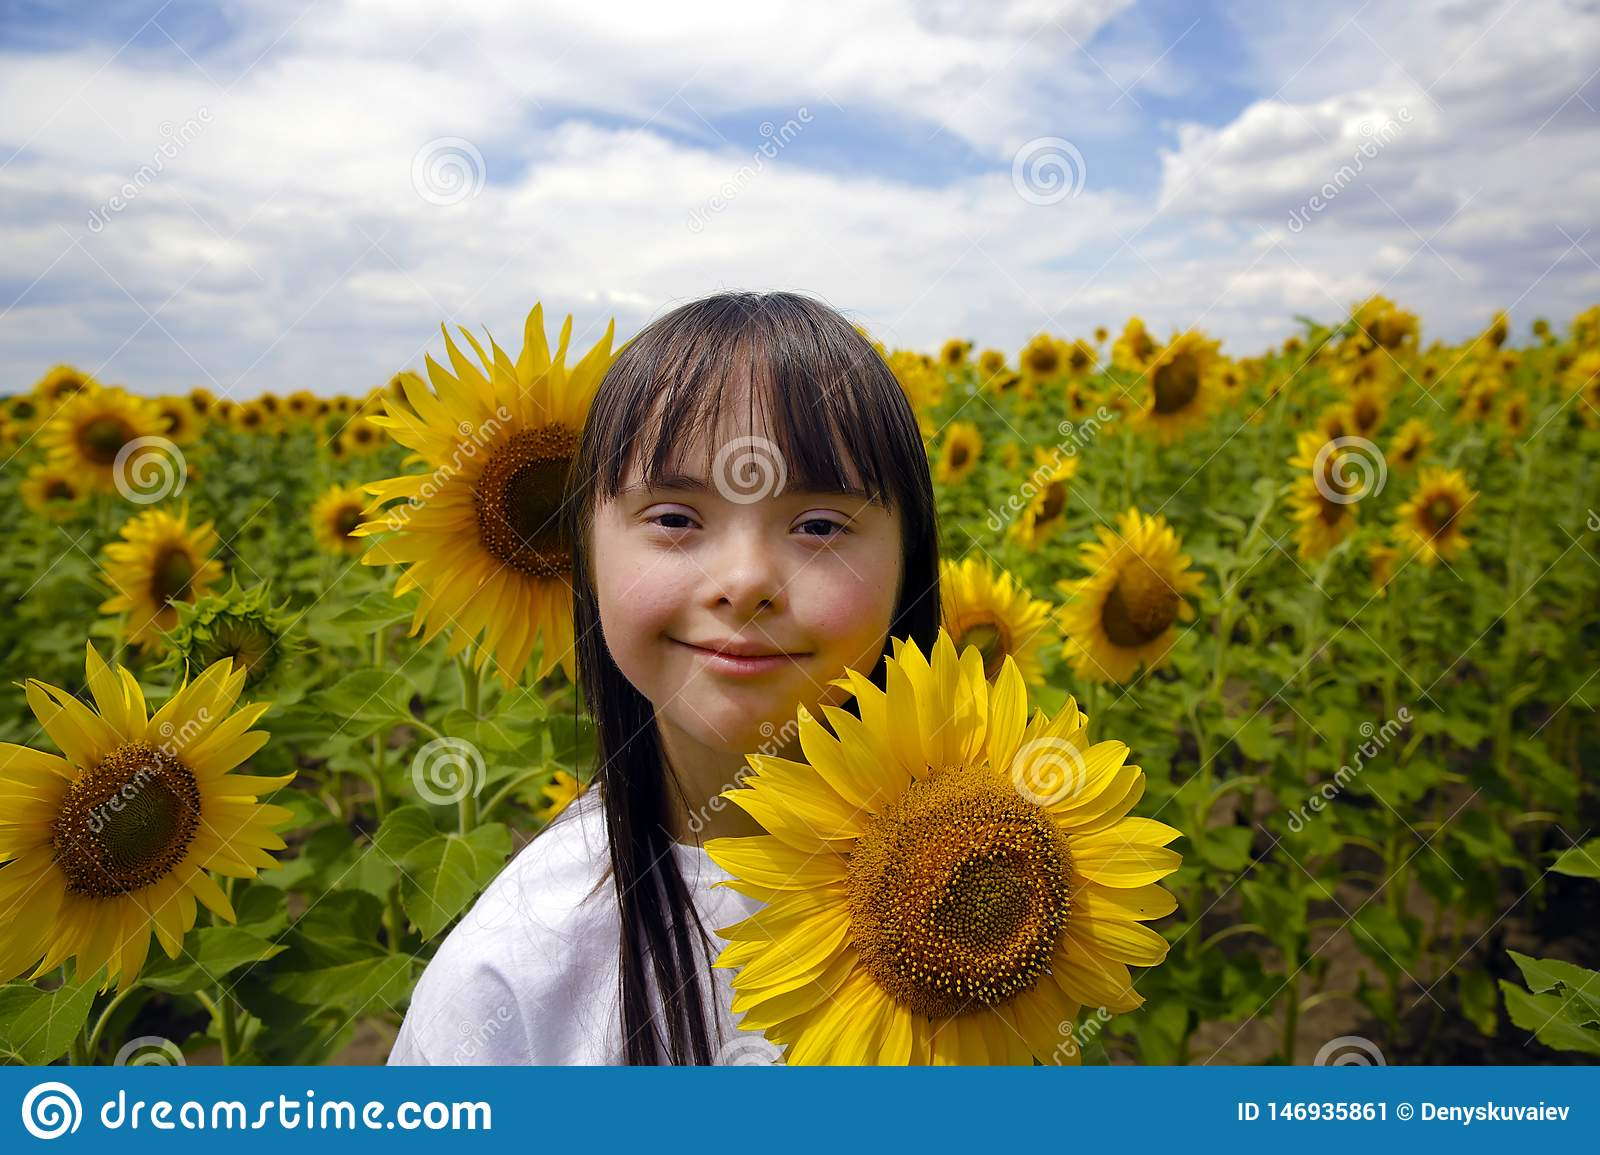 Little girl in sunflowers field.